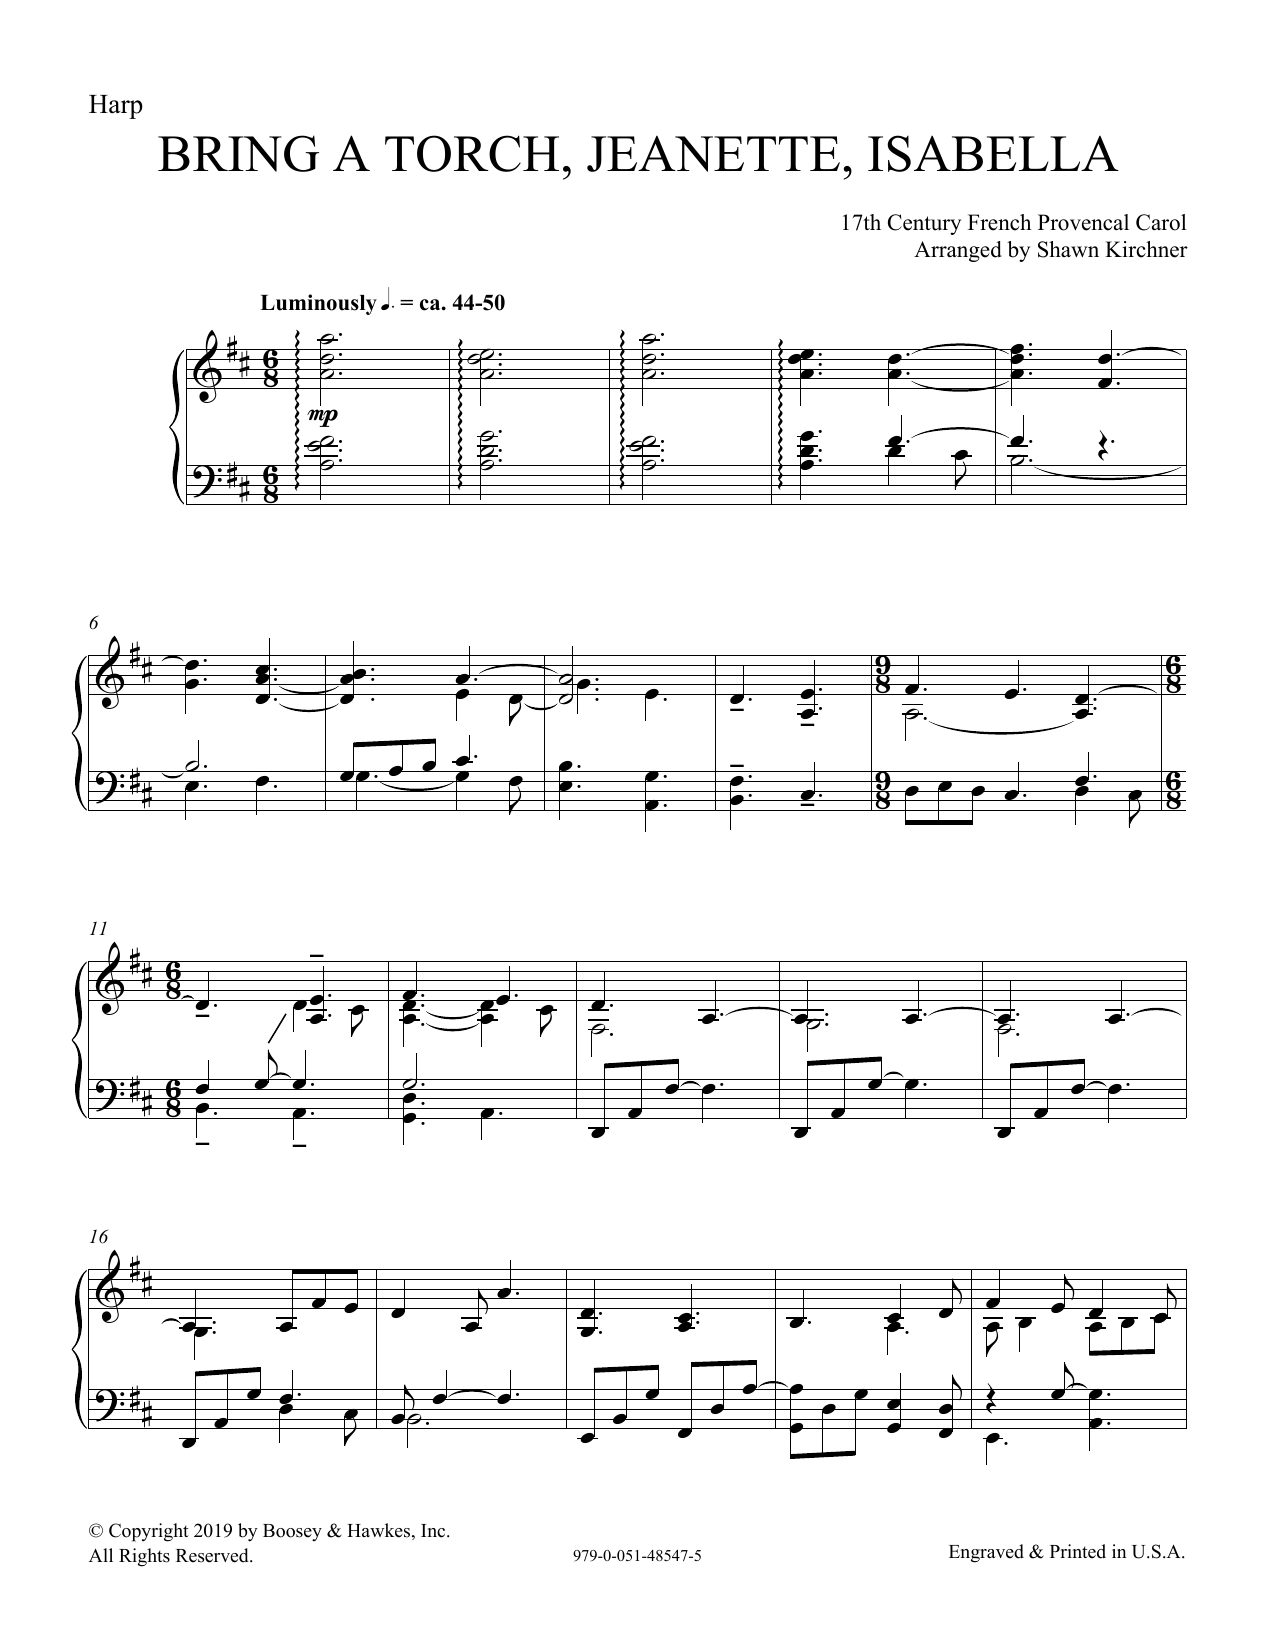 17th Century French Provencal Bring a Torch, Jeanette, Isabella (arr. Shawn Kirchner) - Harp sheet music preview music notes and score for Choir Instrumental Pak including 3 page(s)